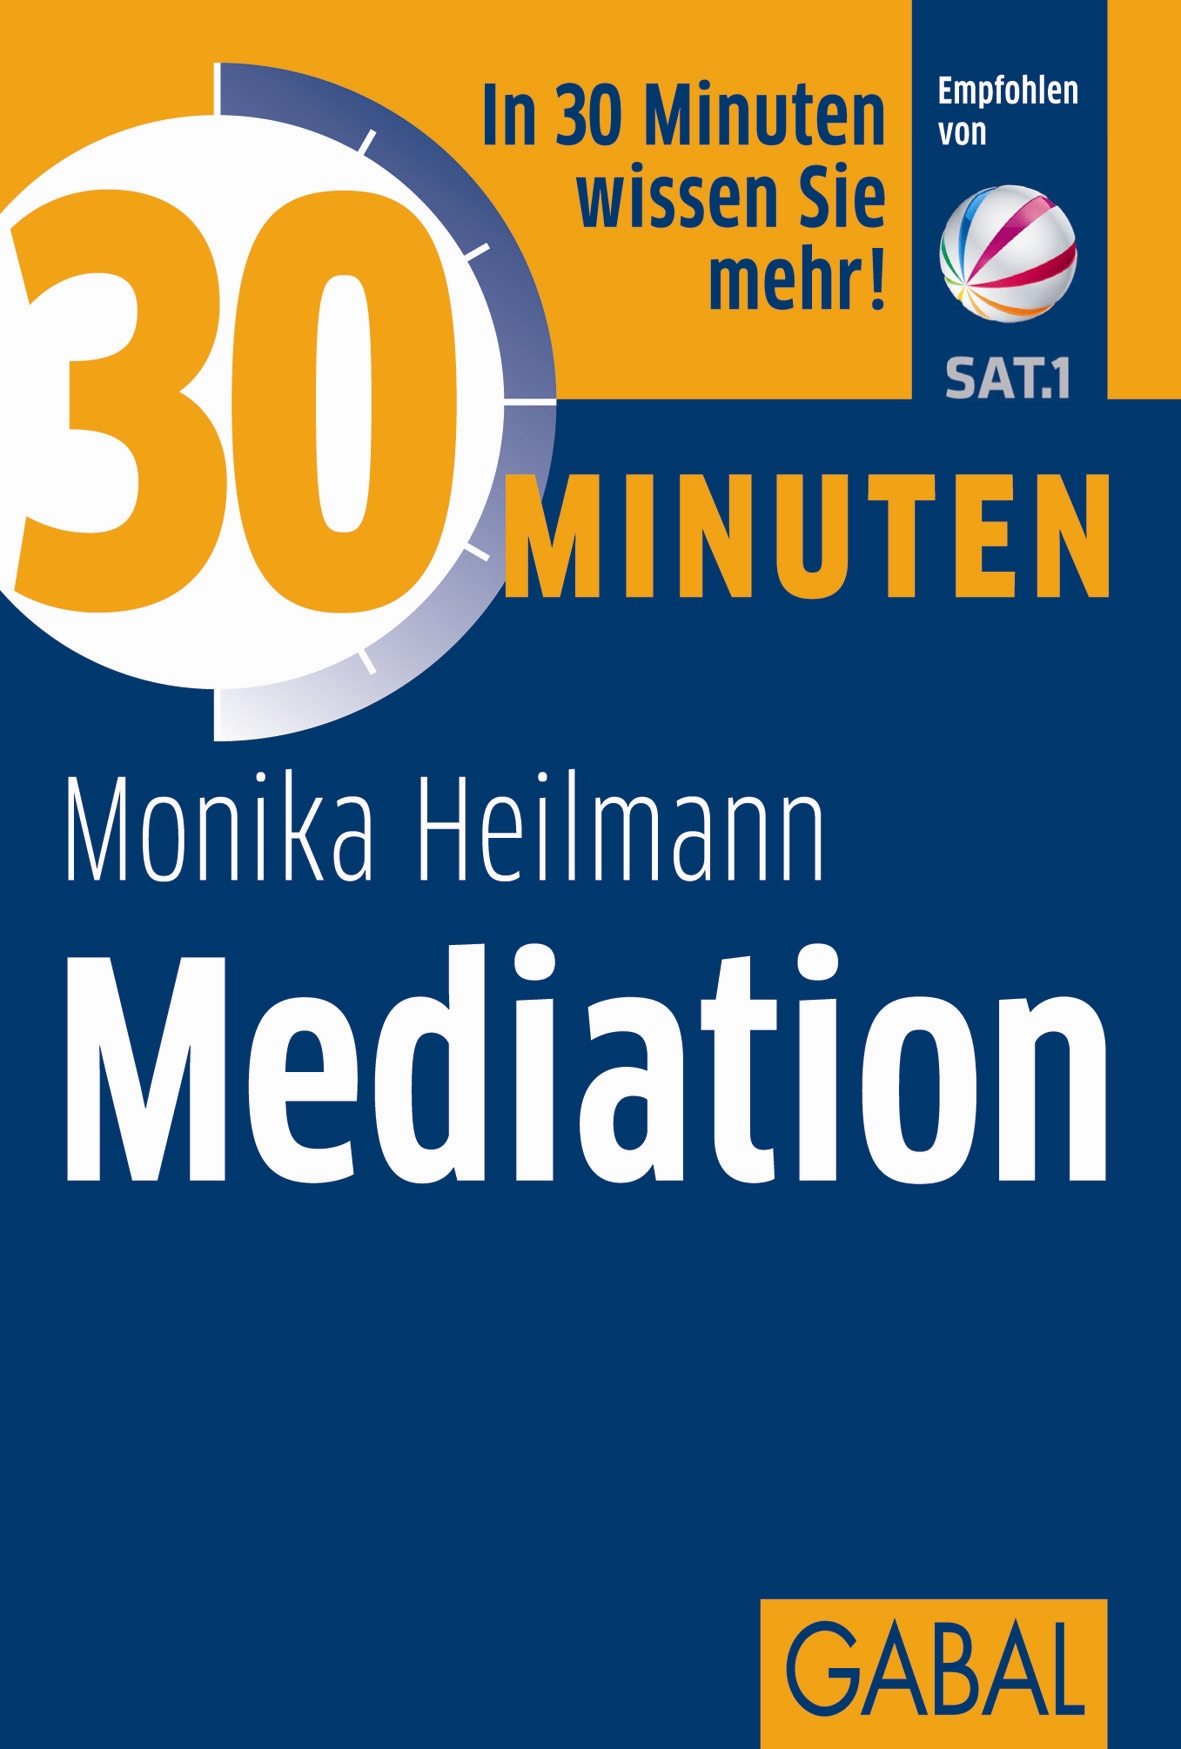 buchcover-mediation.JPG